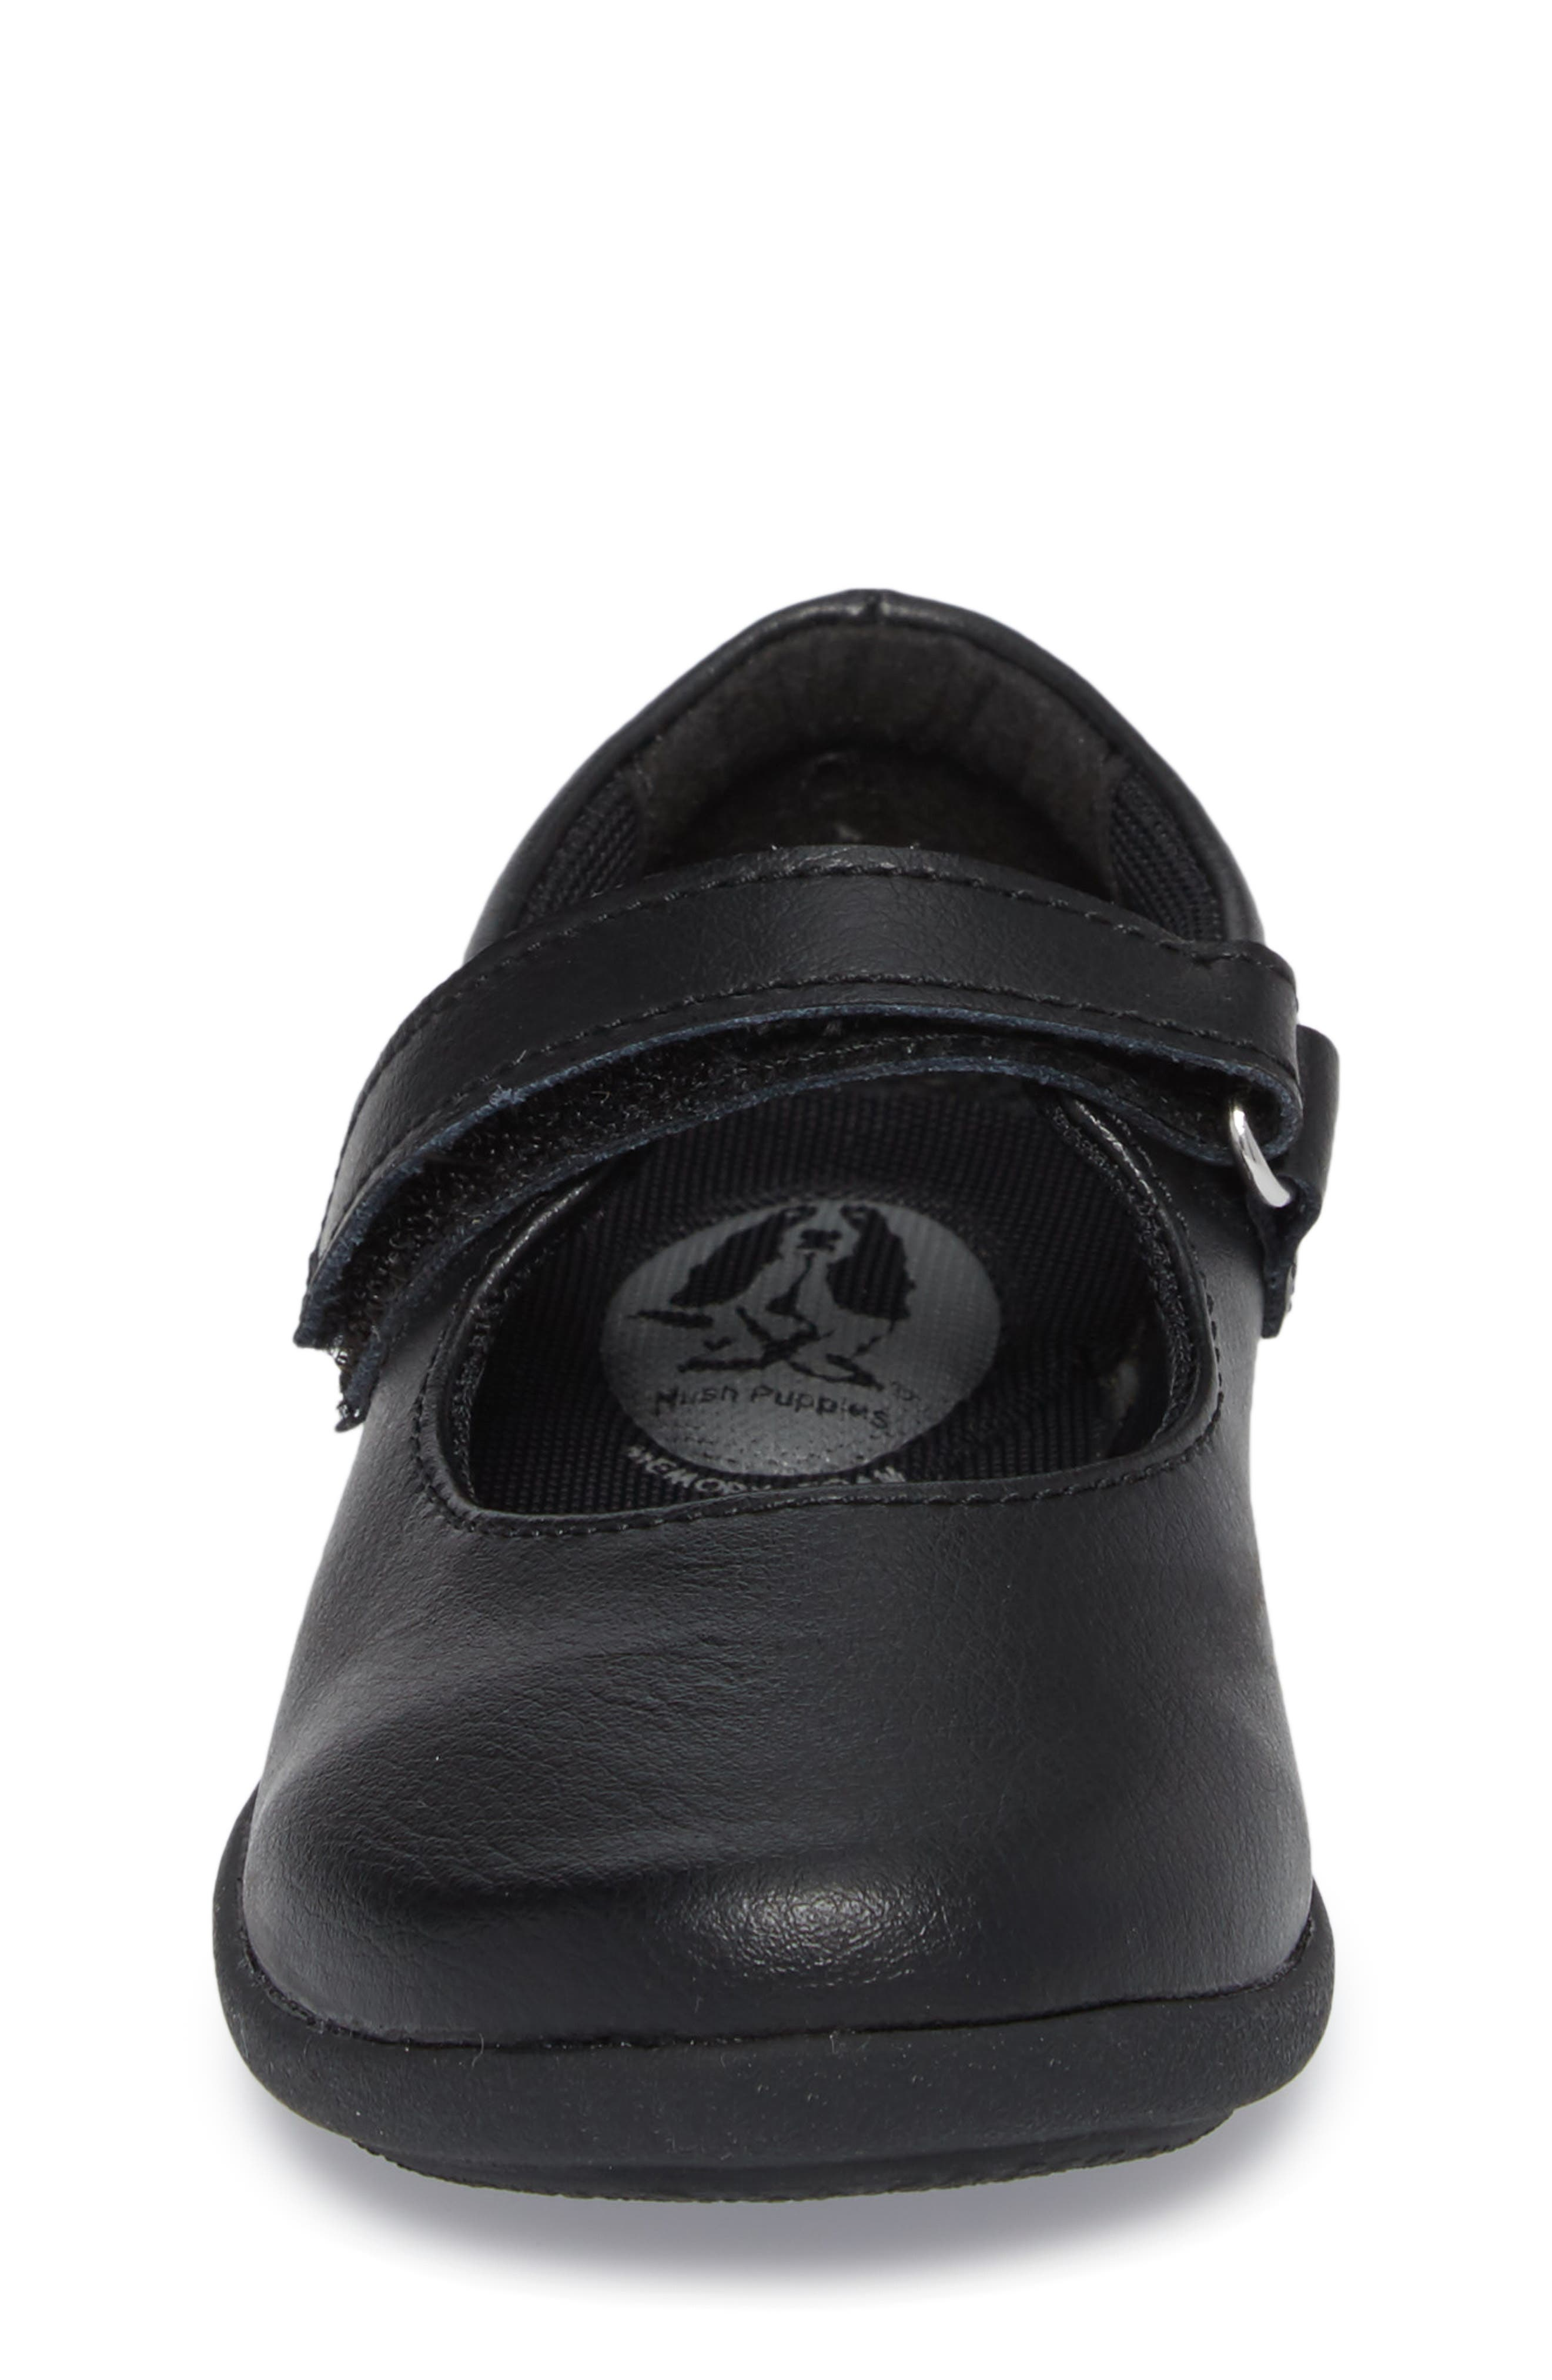 HUSH PUPPIES<SUP>®</SUP>, Lexi Mary Jane Flat, Alternate thumbnail 4, color, BLACK LEATHER